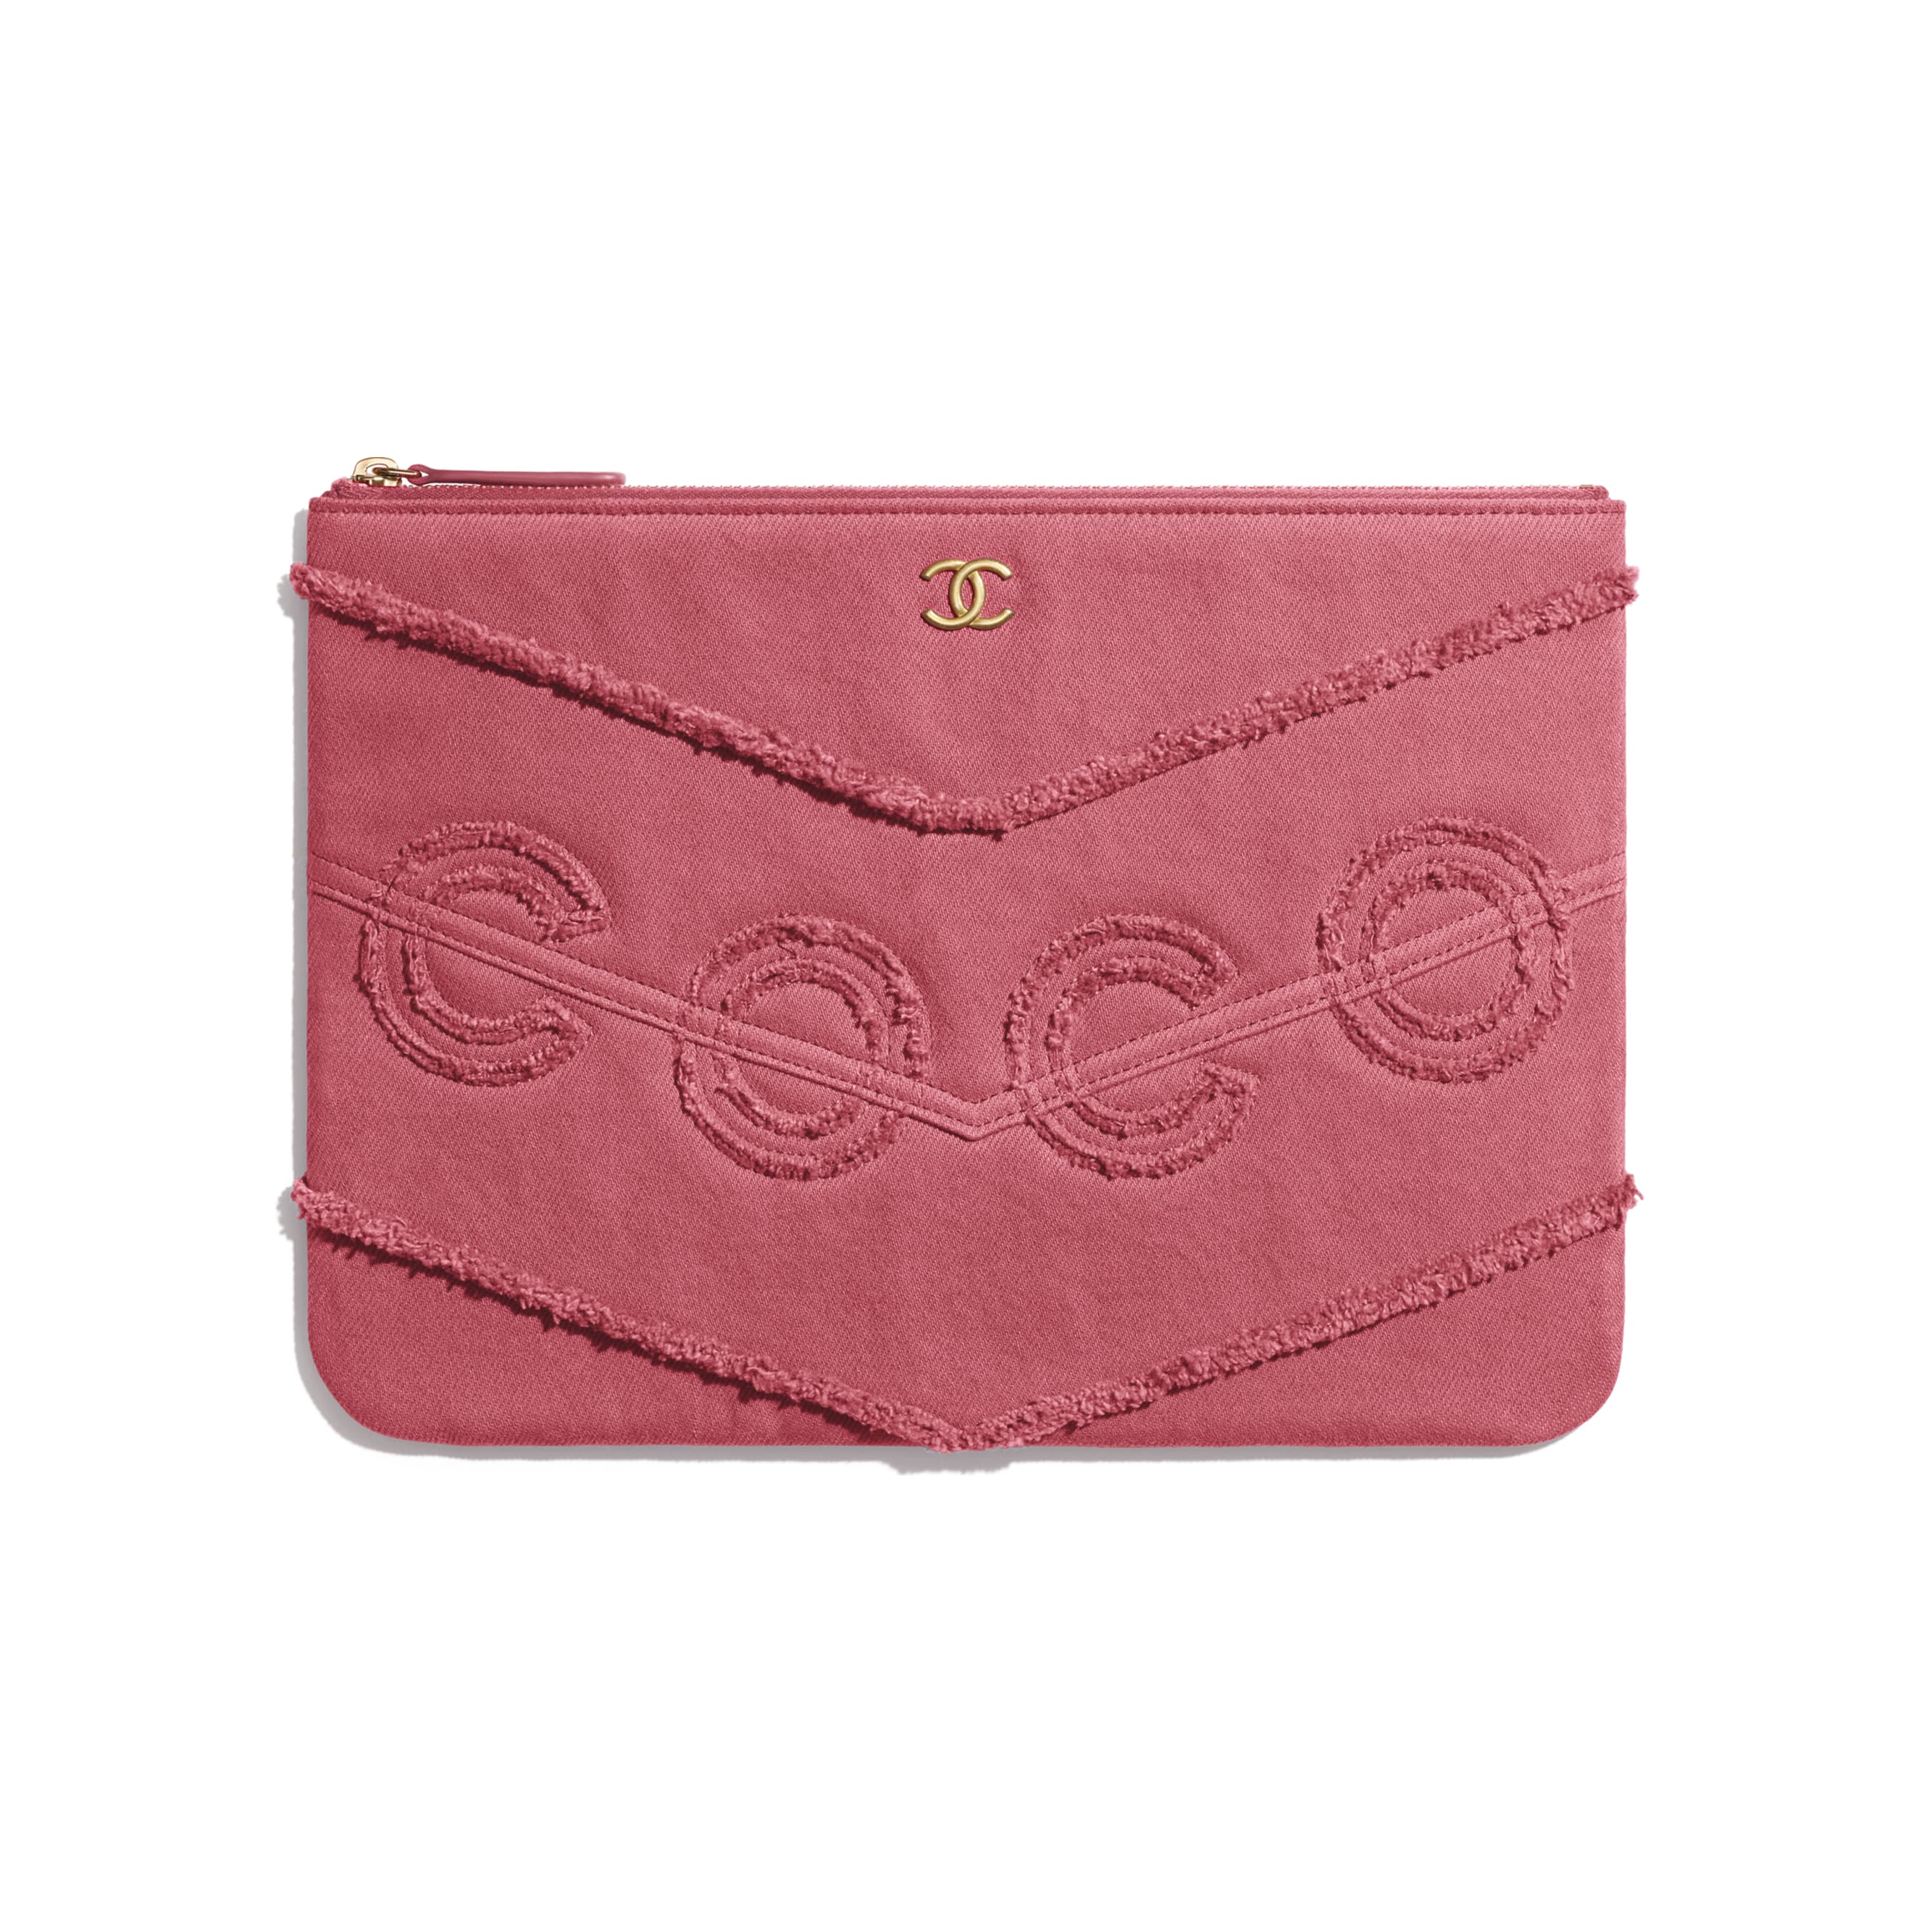 Pouch - Pink - Denim & Gold Metal - CHANEL - Default view - see standard sized version